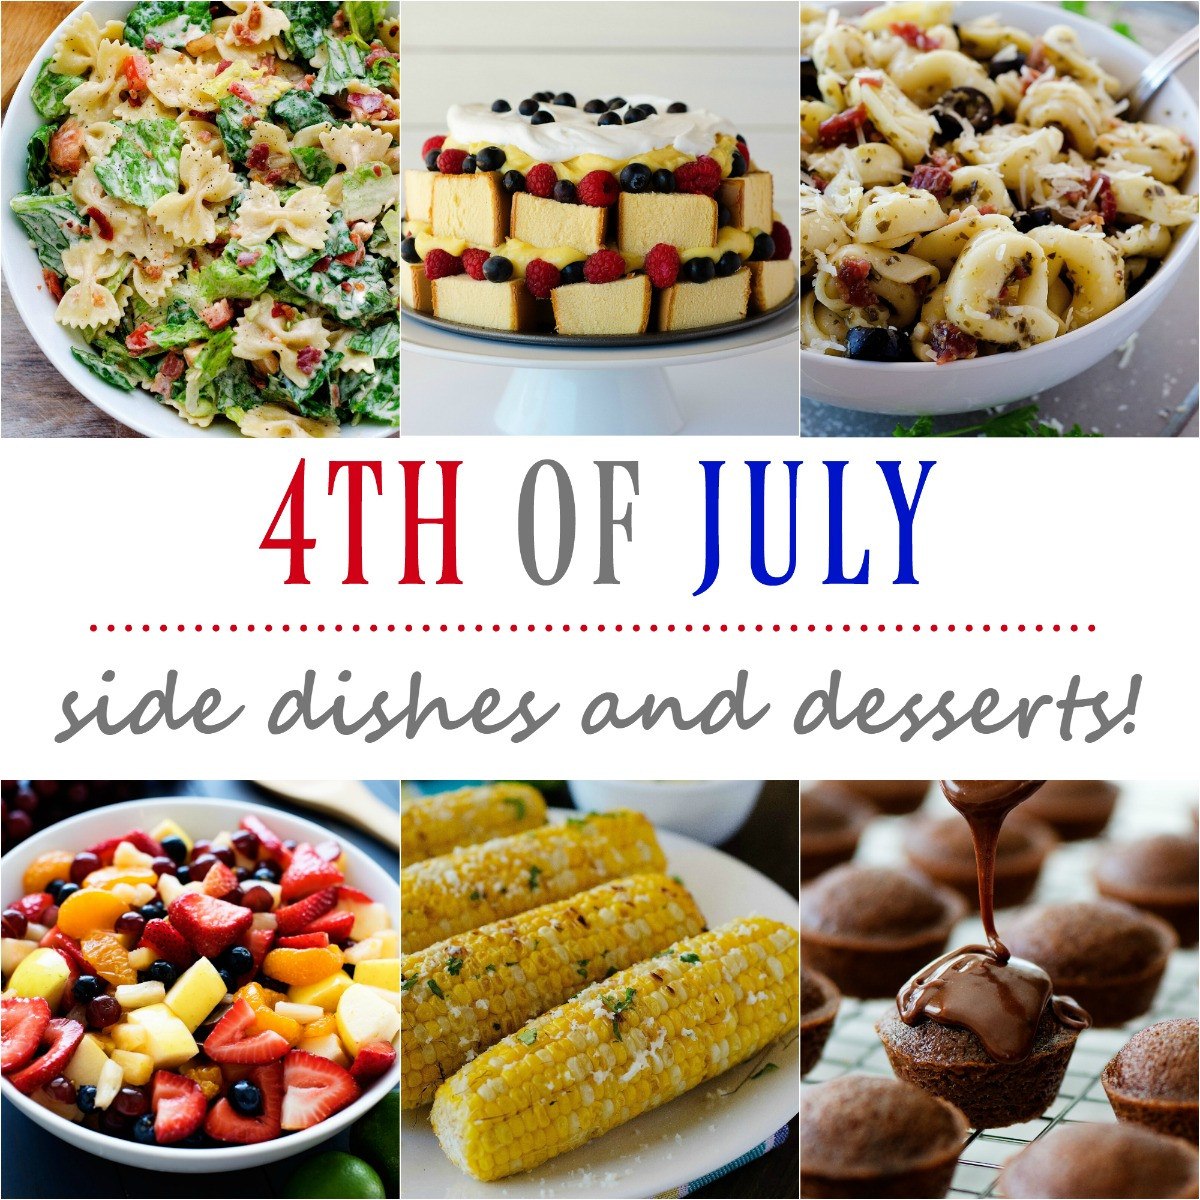 4Th Of July Side Dishes  4th of July side dishes and desserts Life In The Lofthouse